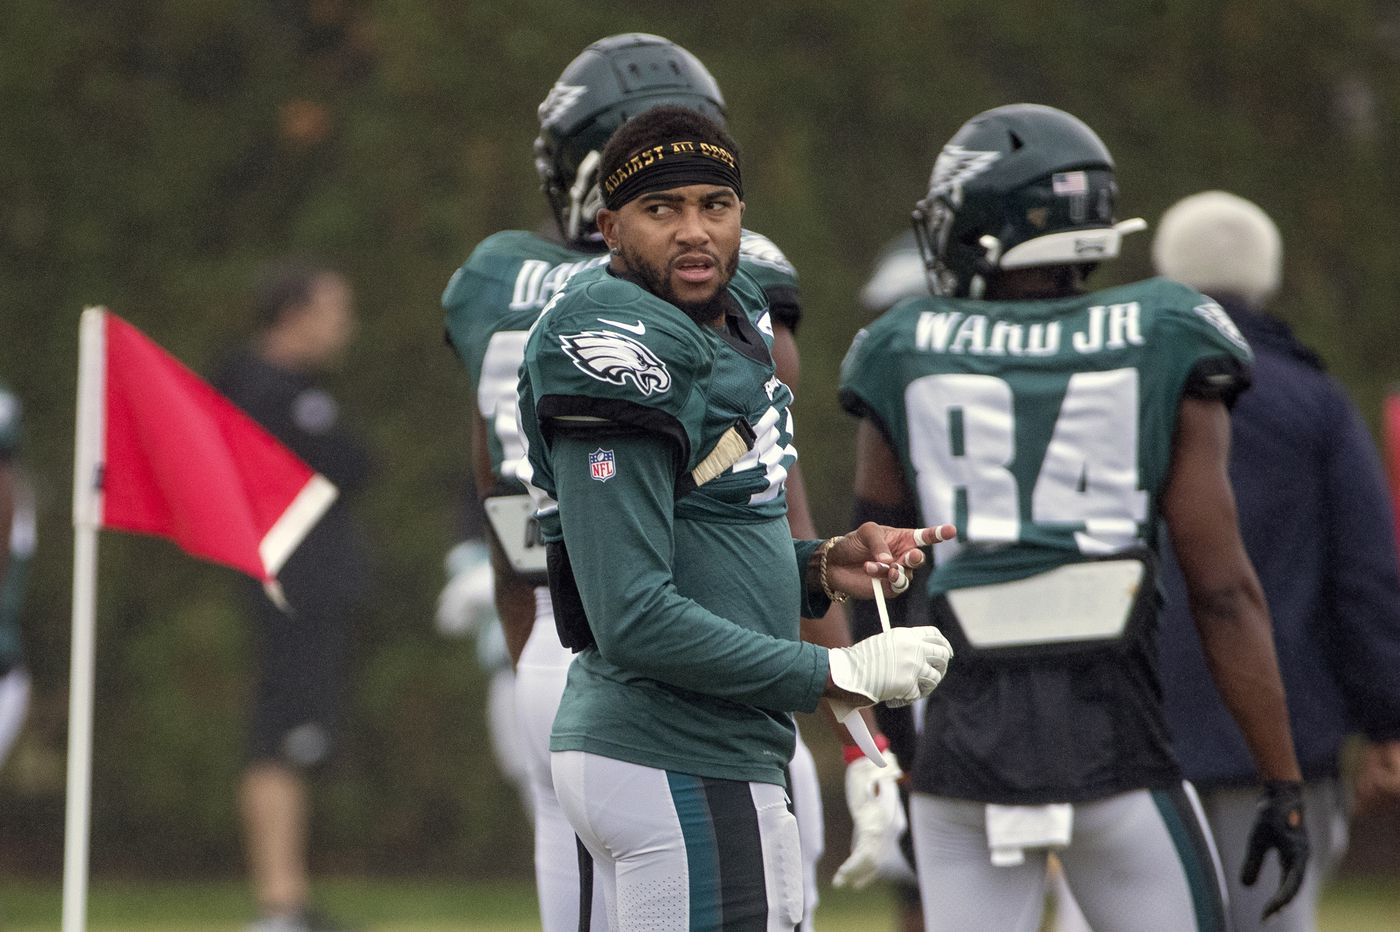 Eagles' DeSean Jackson said he's ready to return from injury, with caution